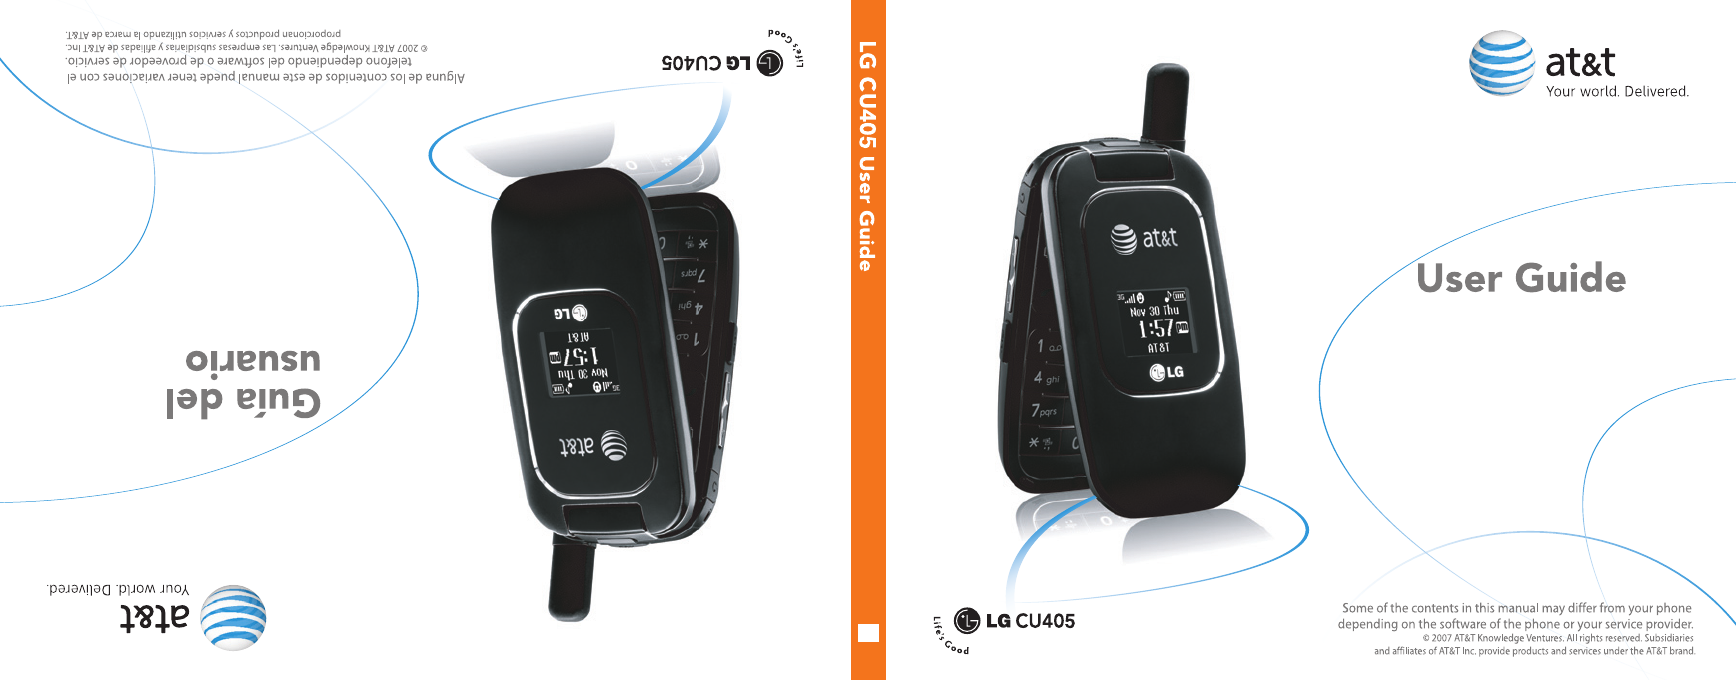 at t cell phone cu405 user guide manualsonline com rh cellphone manualsonline com LG Flip Cell Phones LG CU400